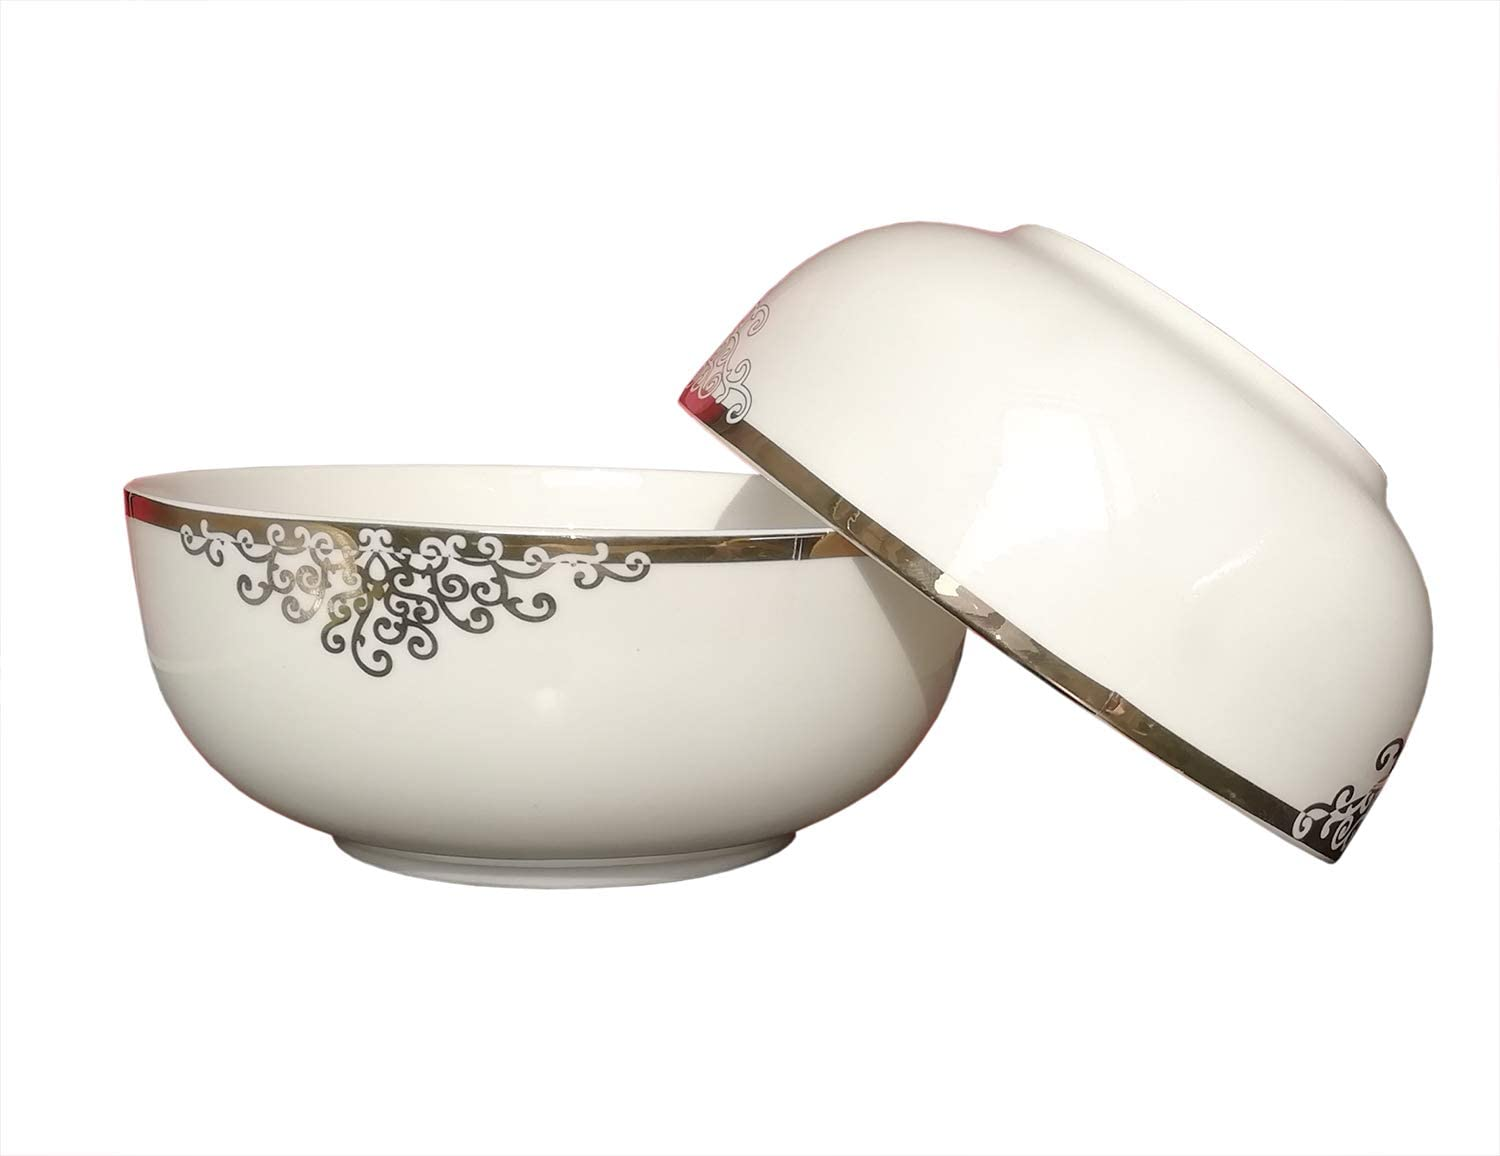 AnnoCasa 2 pieces Thin /& Lightweight Bone China Large Bowls Cheese 7 inches White with Red Rose for Fruit Vegetables Salad Bowl